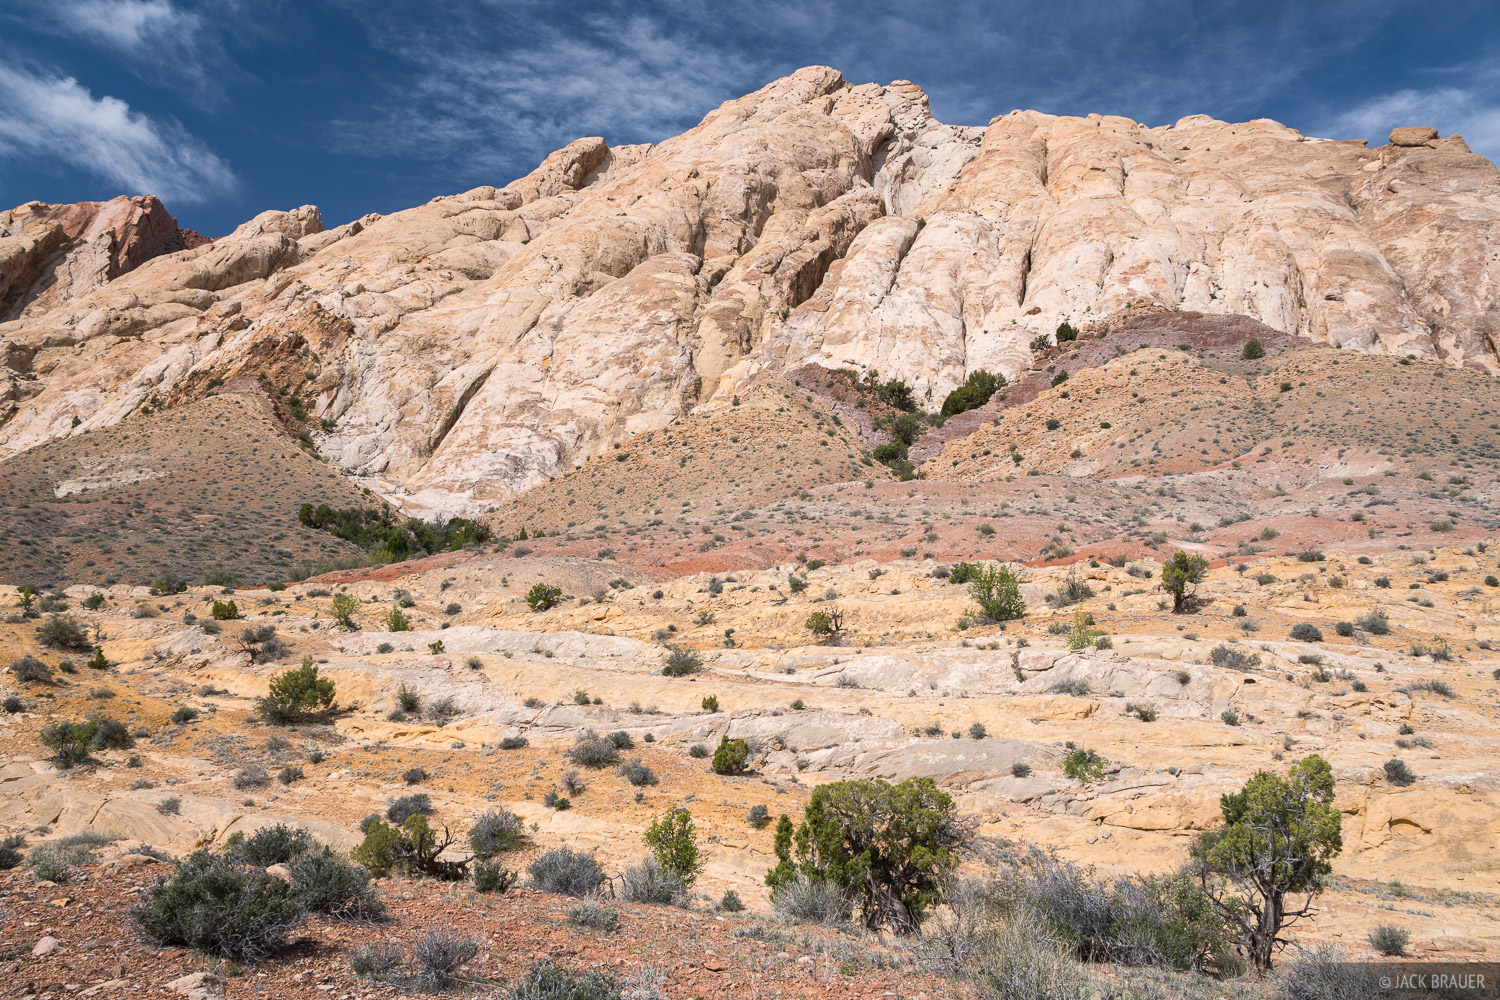 Looking up at the soaring sandstone slabs of the San Rafael Reef, just south of I-70, west of Green River. The sandstone was...